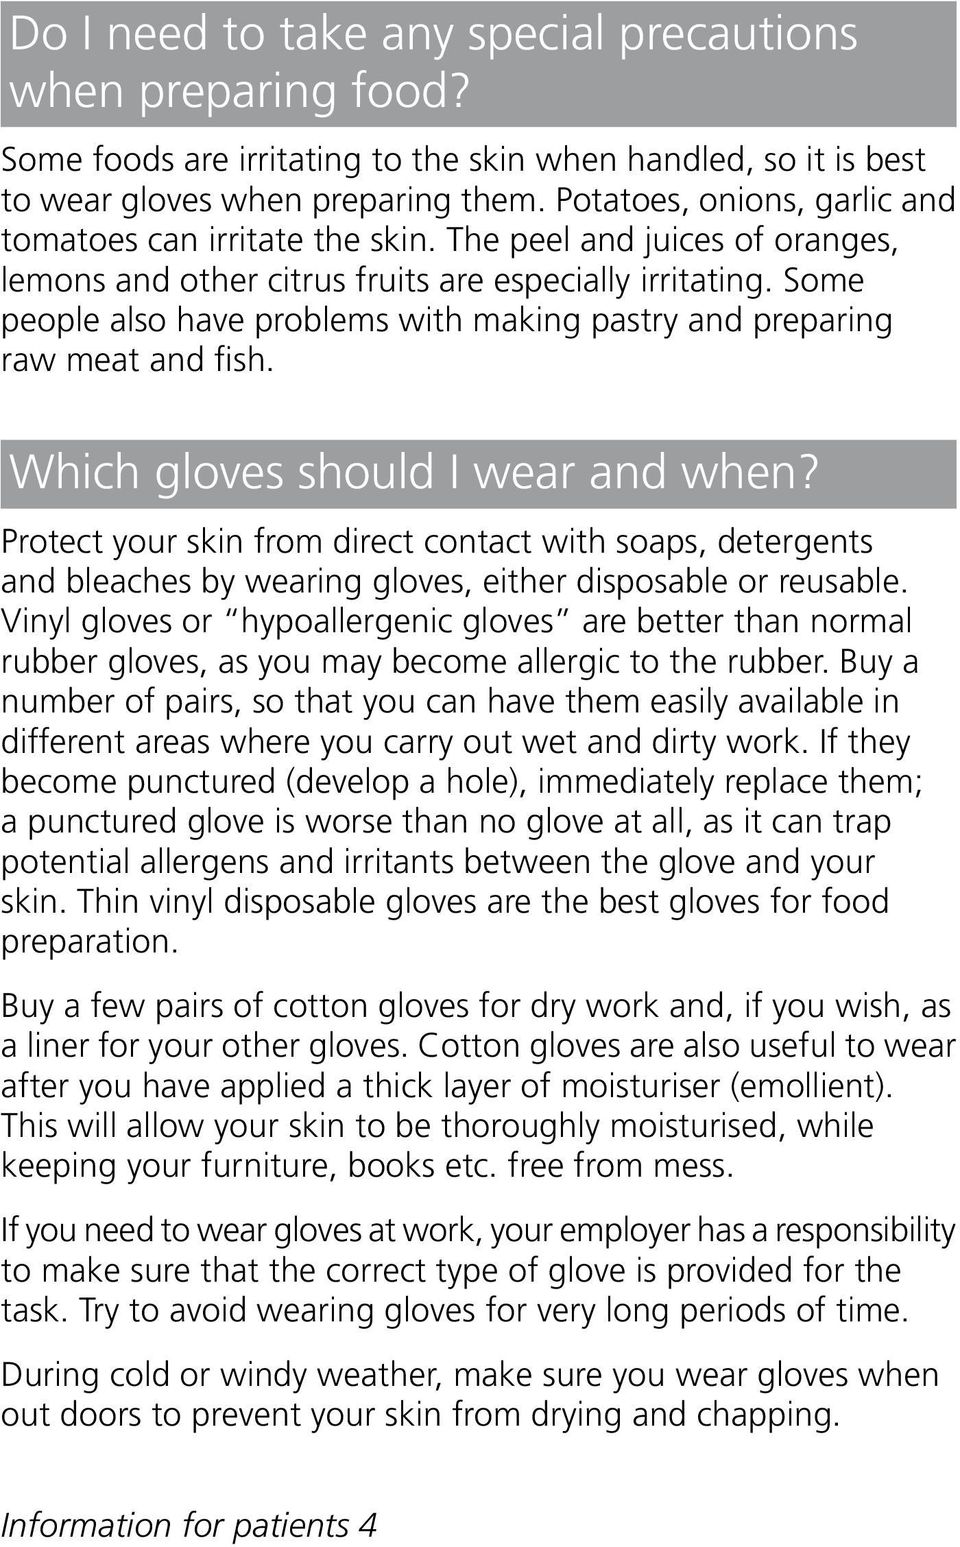 Some people also have problems with making pastry and preparing raw meat and fish. Which gloves should I wear and when?